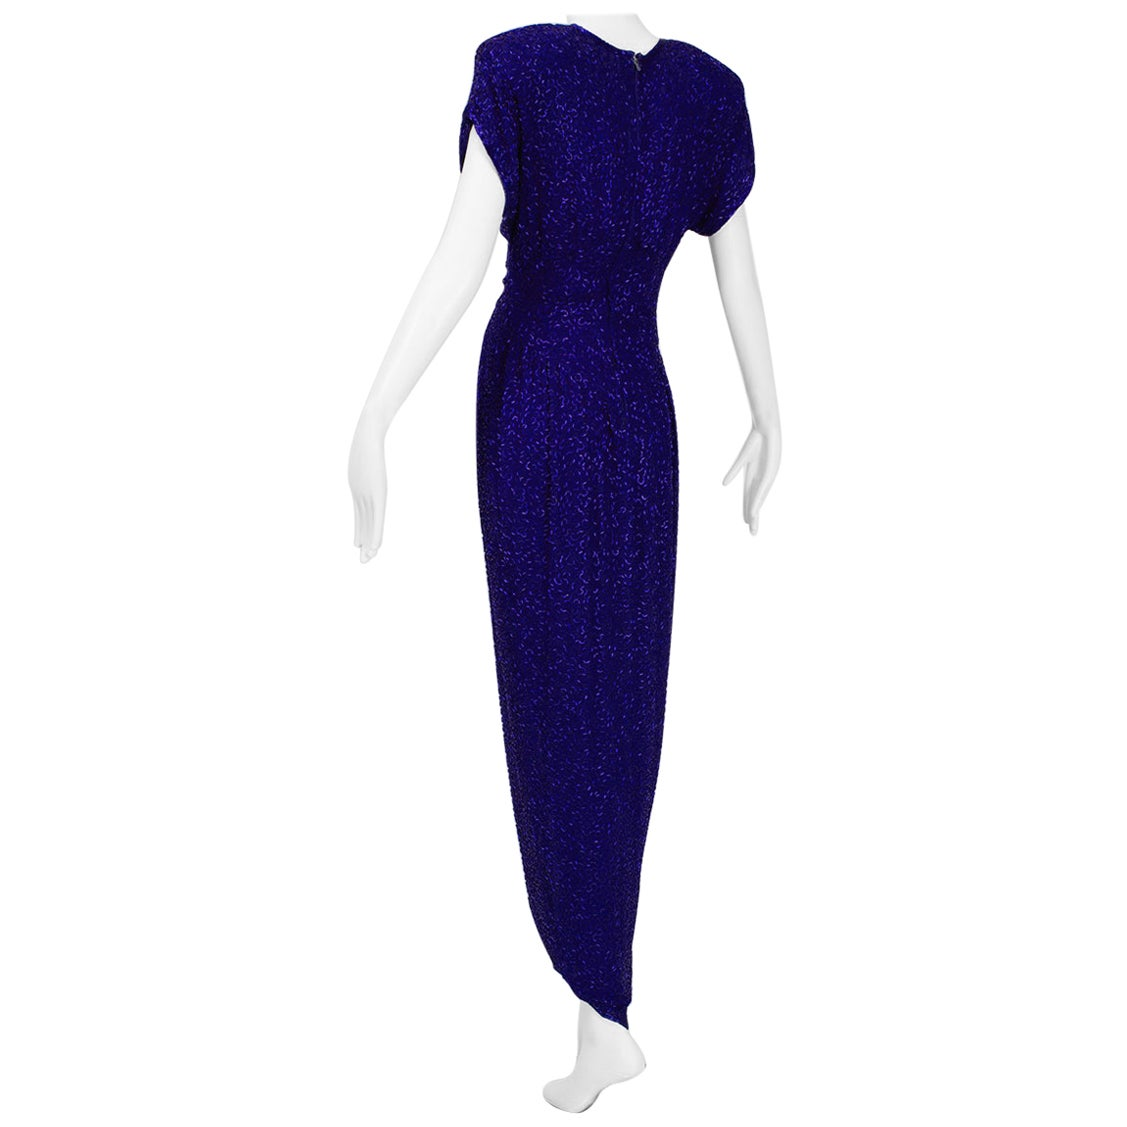 Violet Art Deco Beaded Hobble Gown with Pointed Waterfall Skirt - Small, 1980s